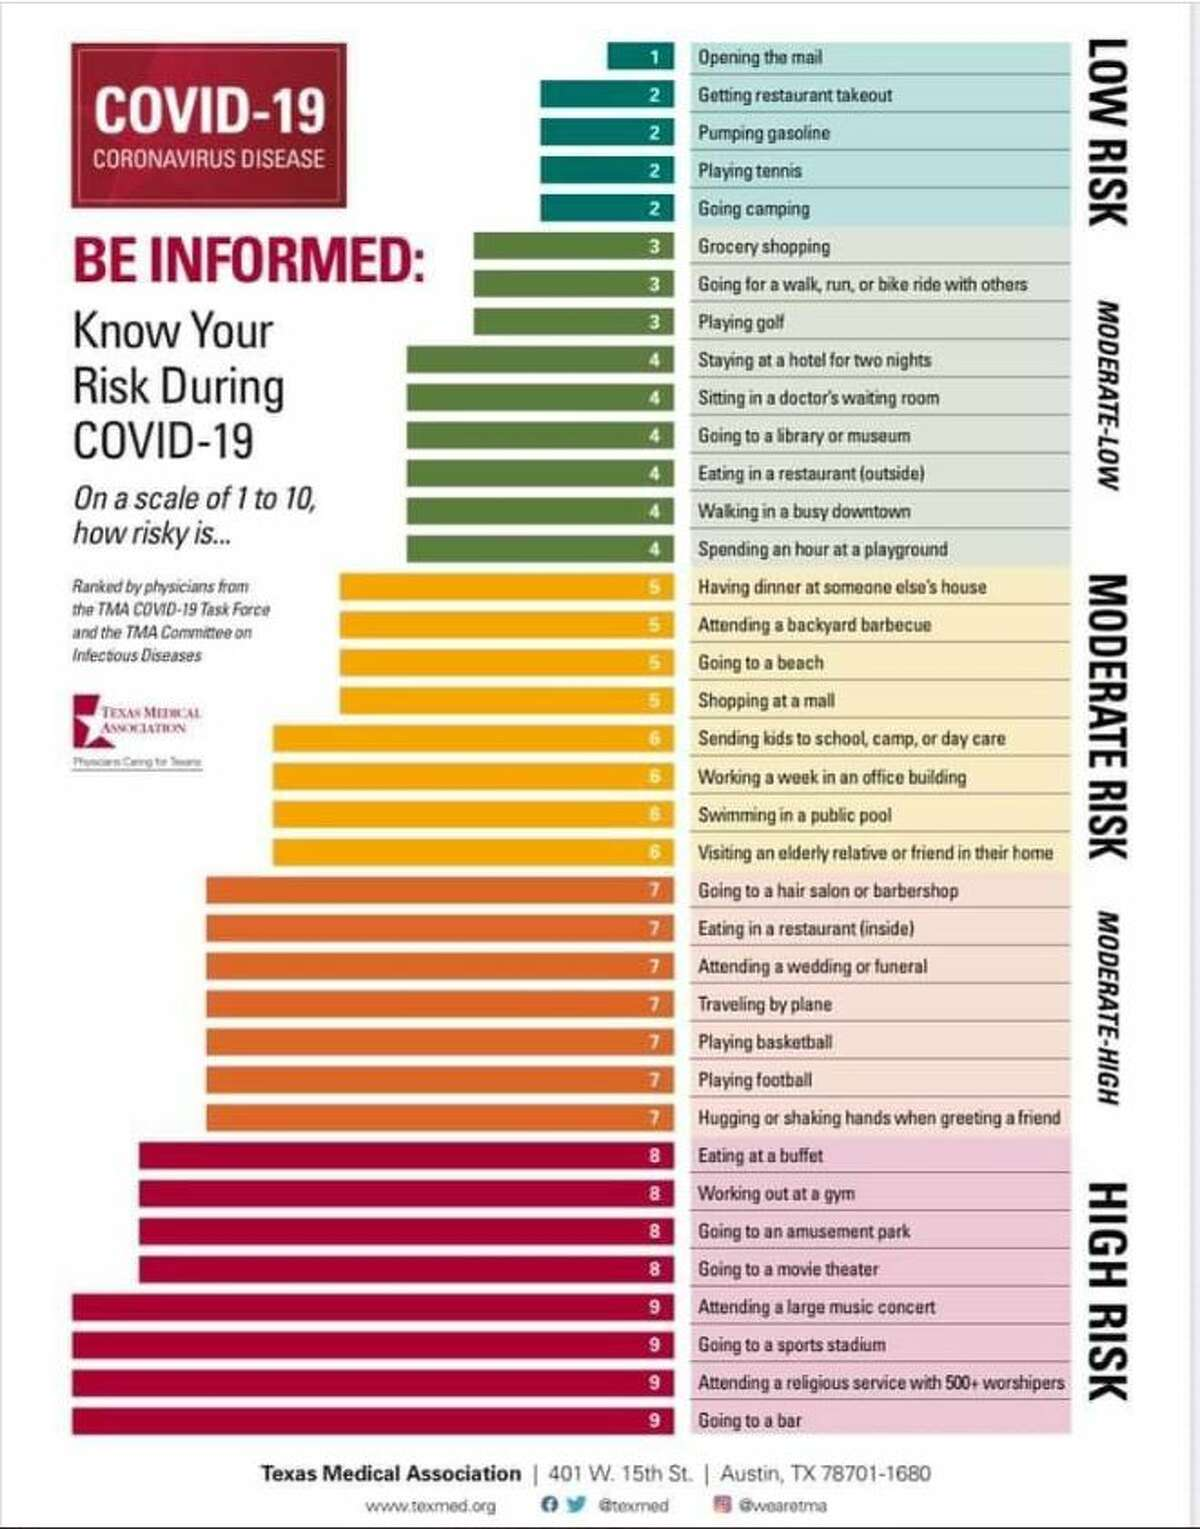 Texas Medical Association's 'Know Your Risk' chart ranks activities from the lowest risk (Level 1) to the highest risk (Level 10).